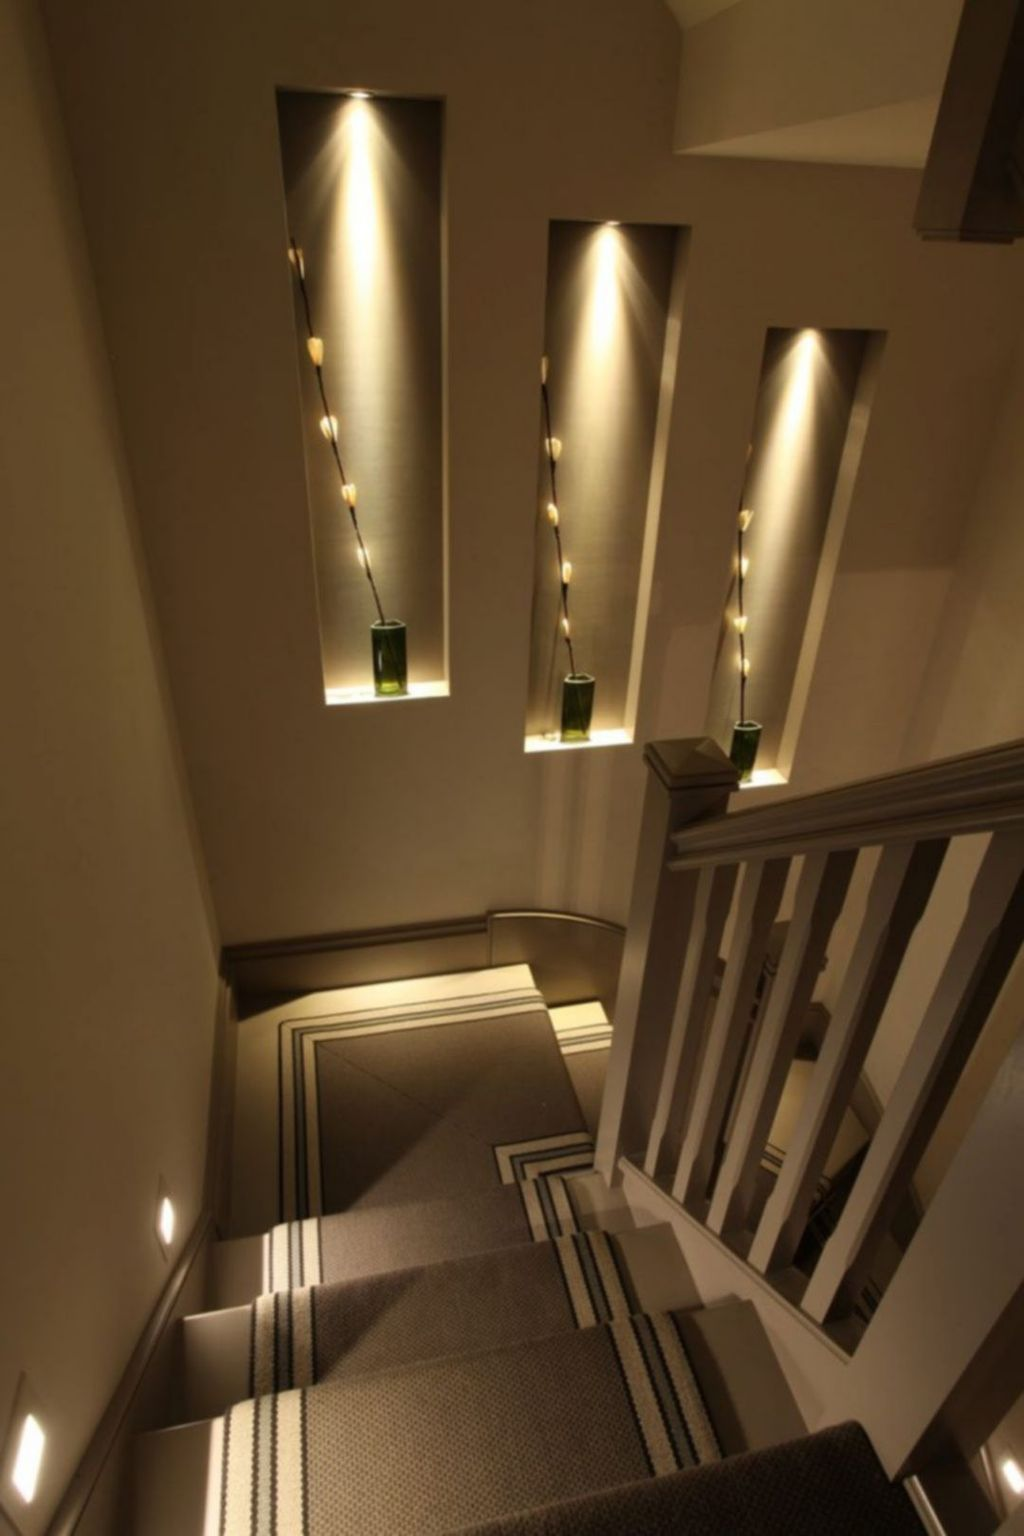 47 Decorative Lighting Design Staircase Lighting Ideas Stairs Design Stairway Lighting